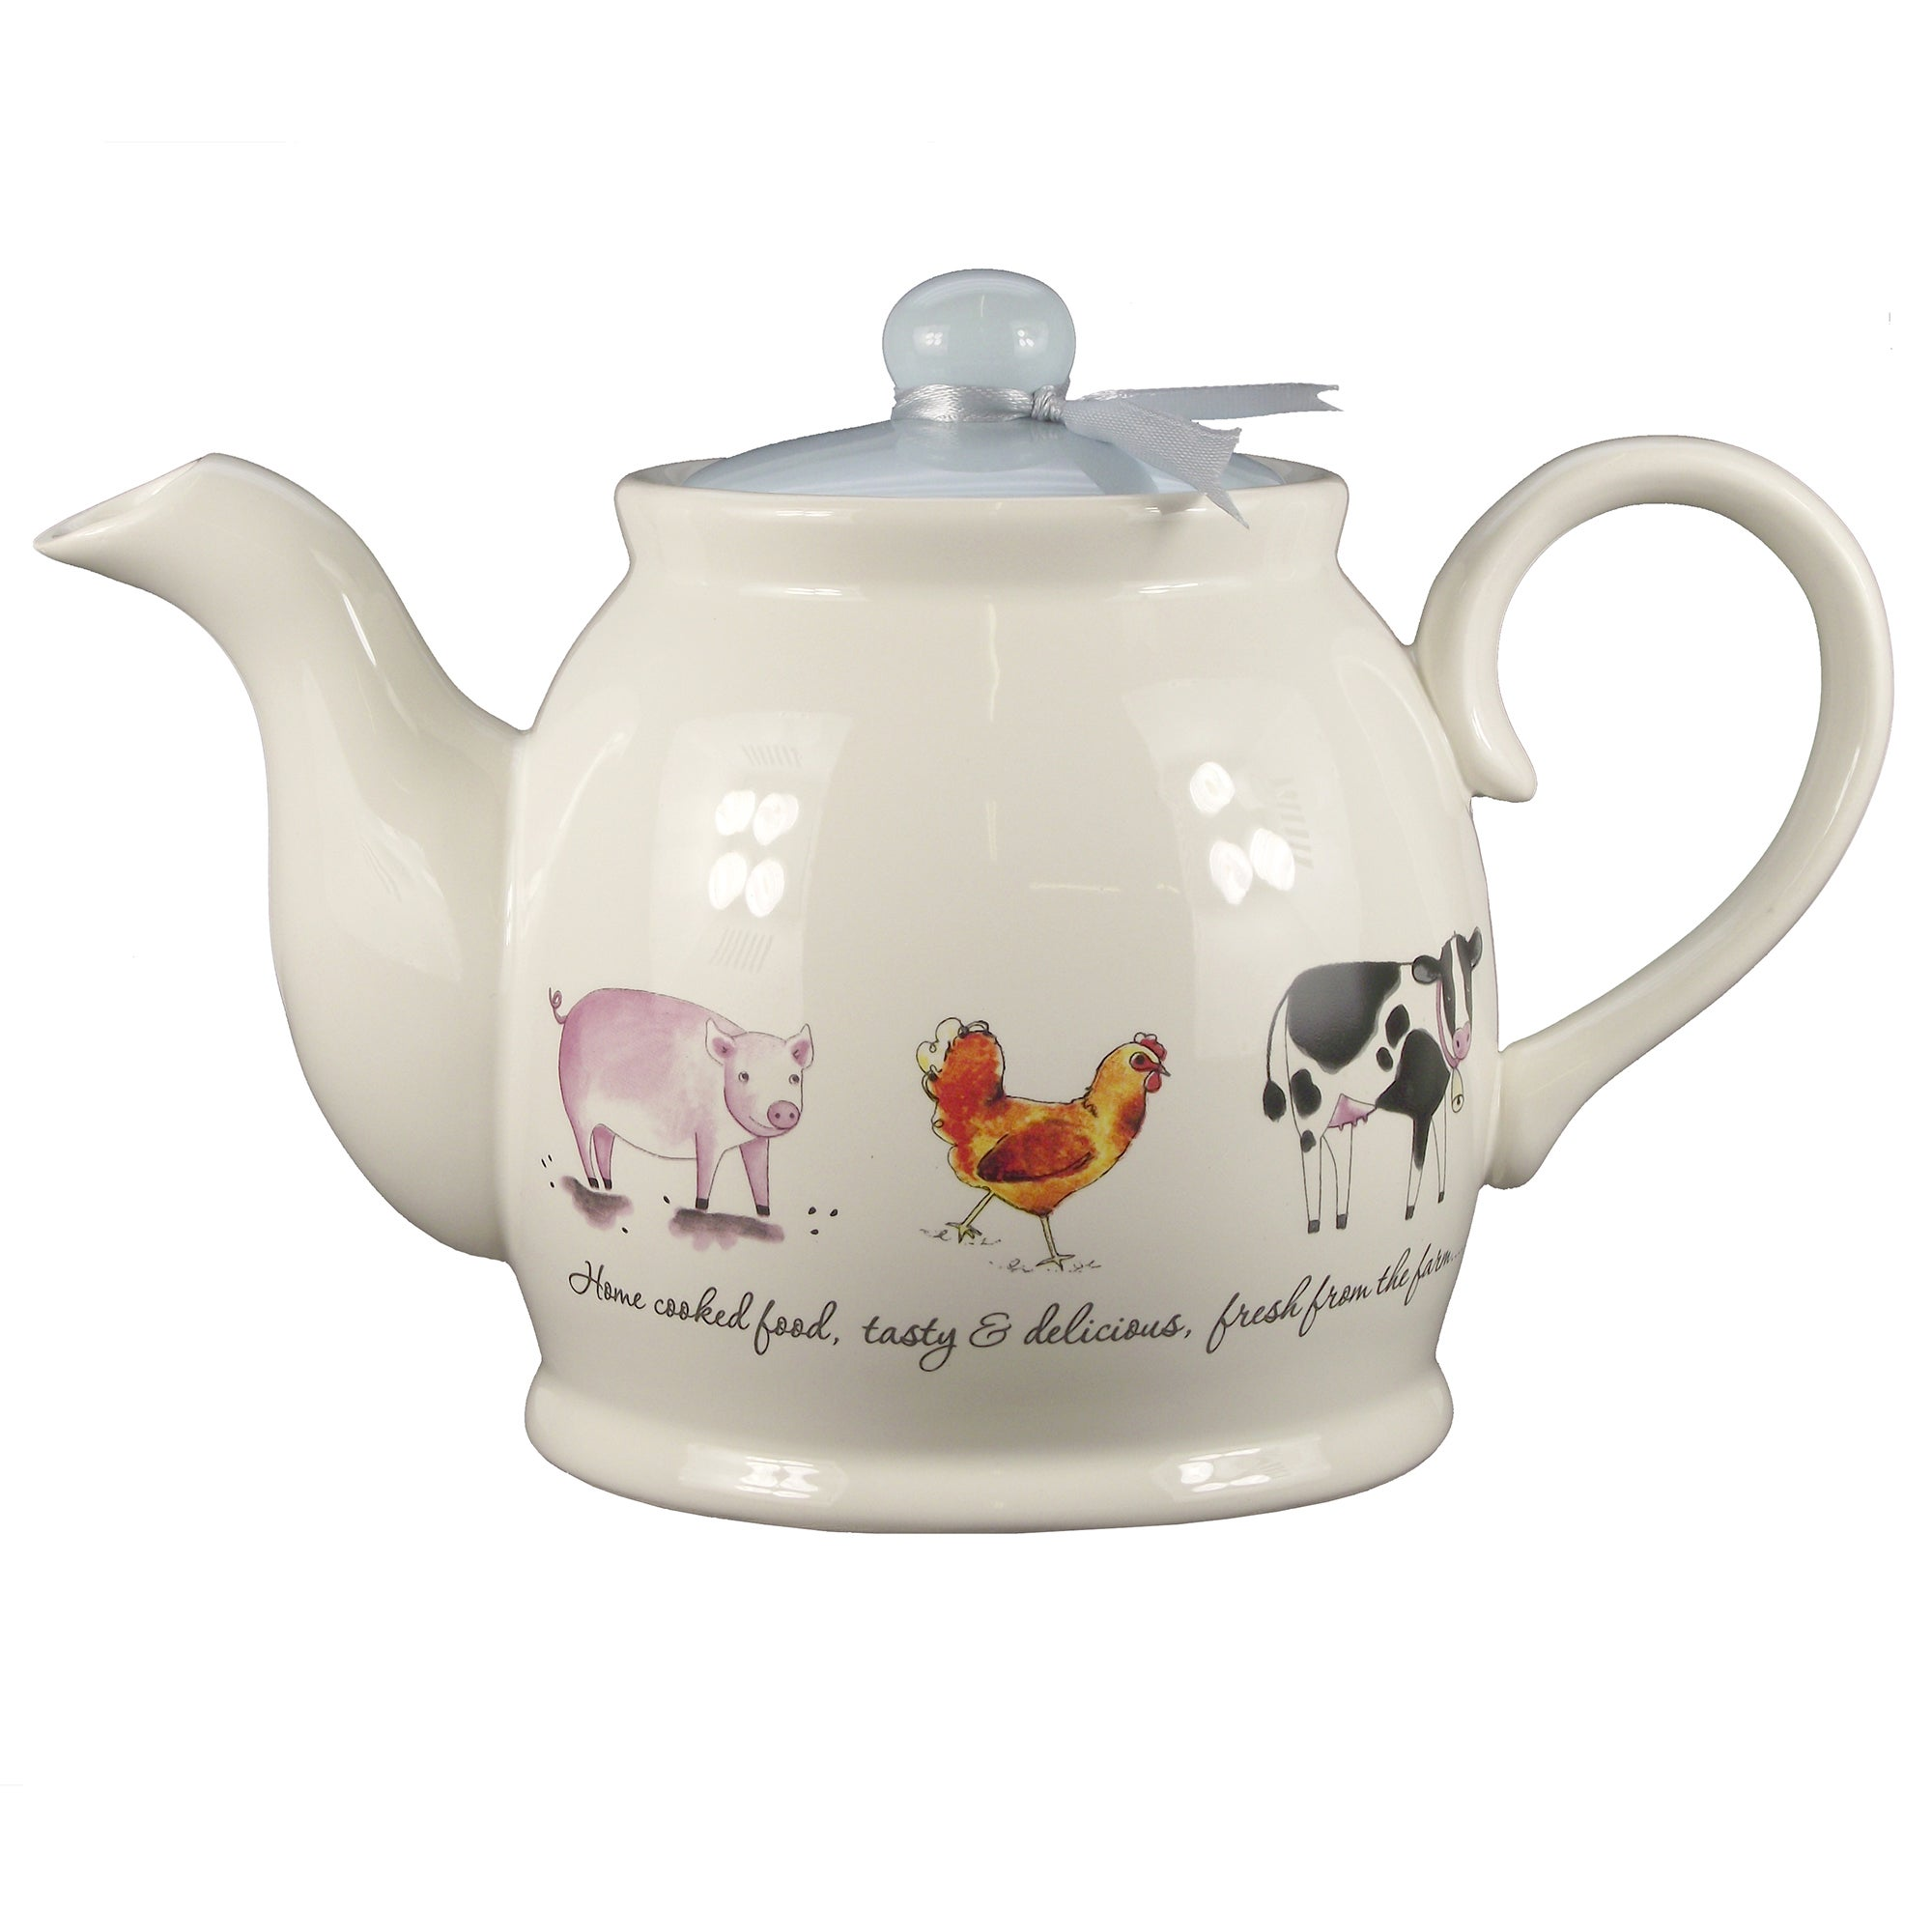 Bakewell Farm Collection Teapot